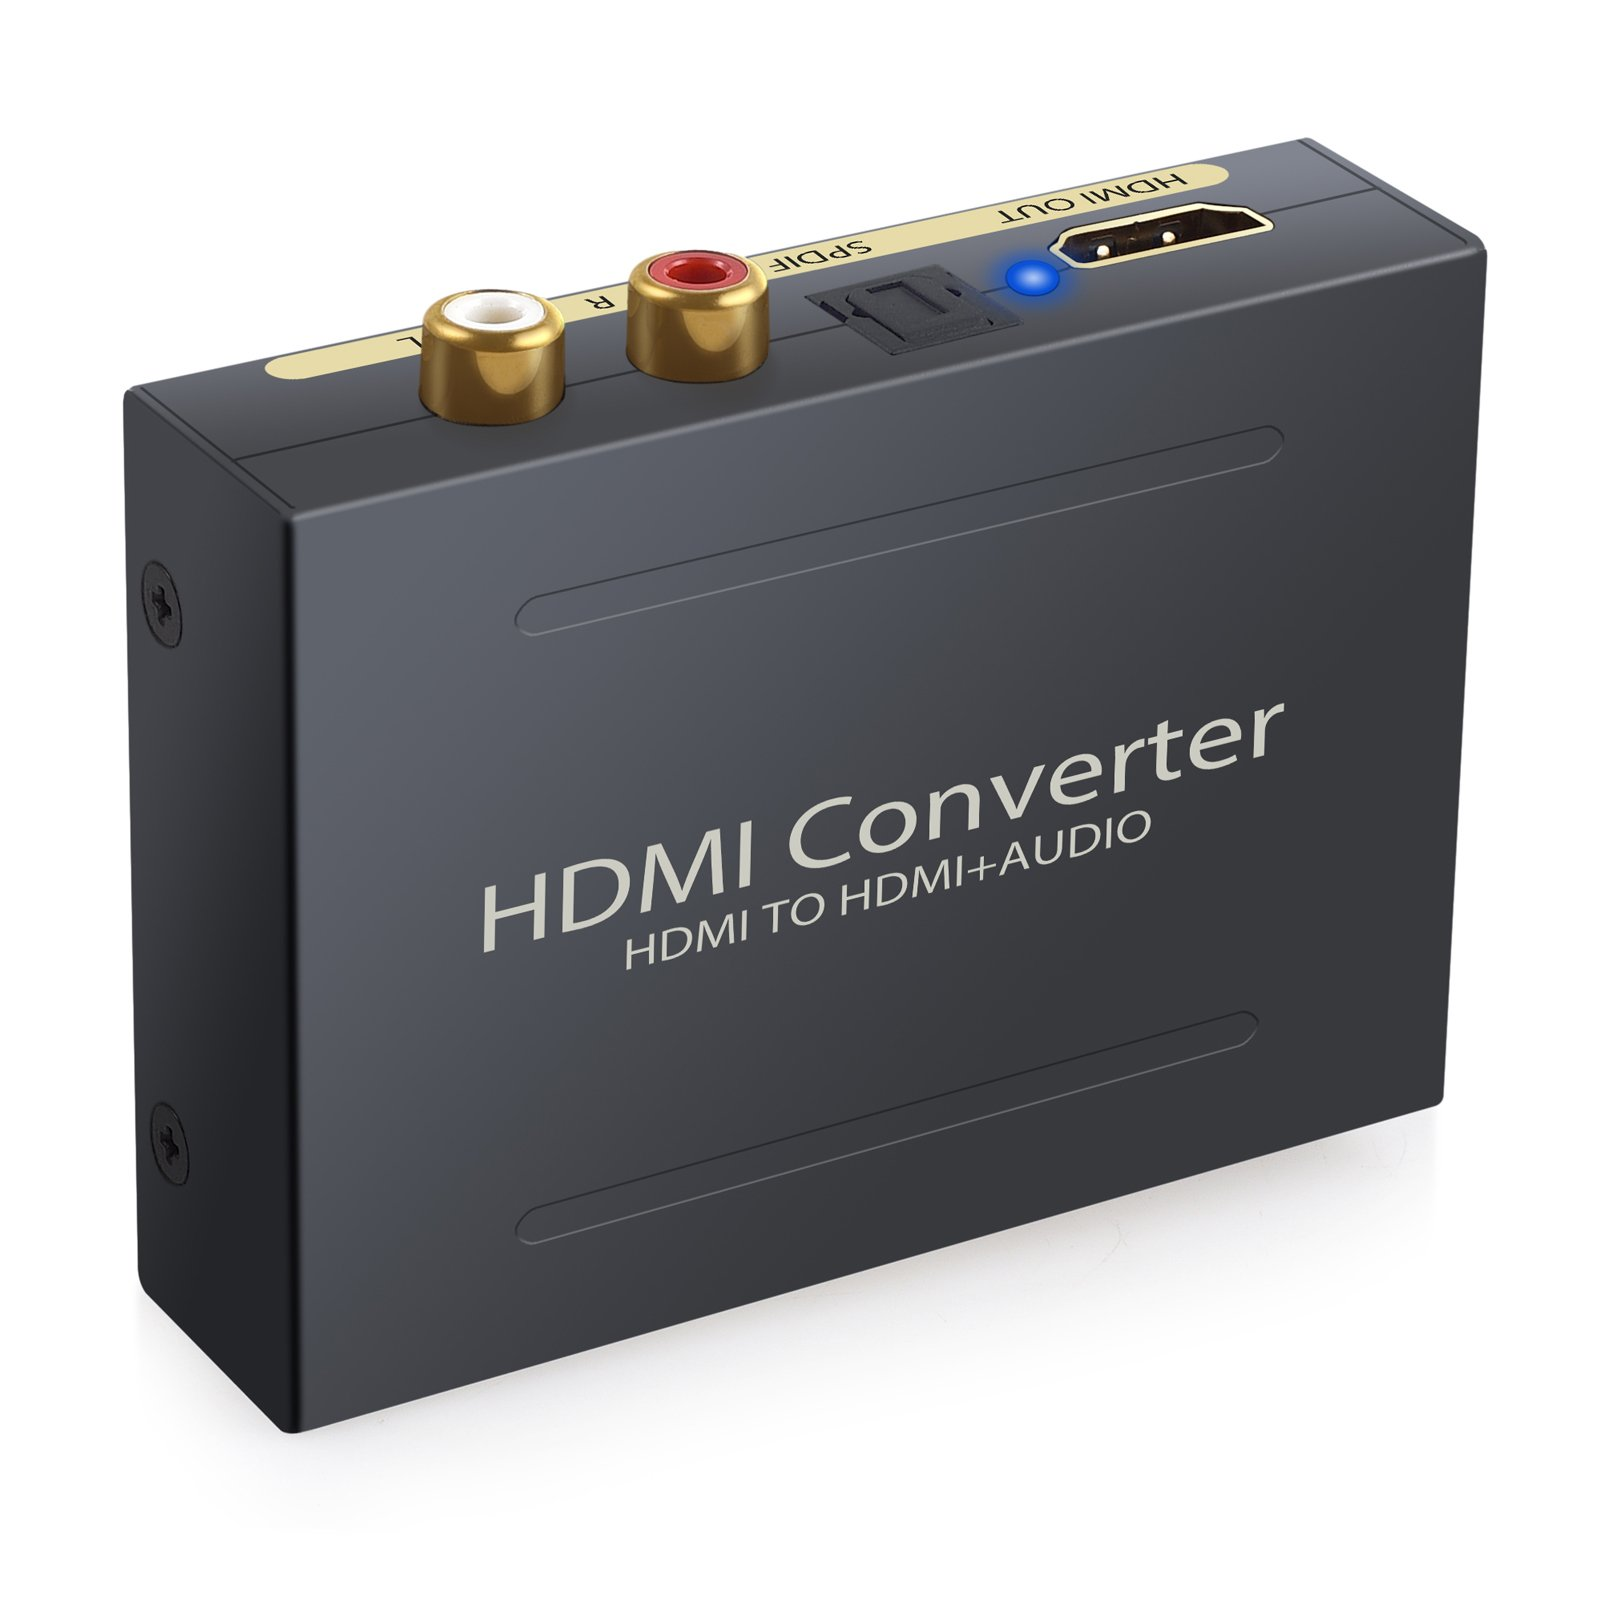 Proster HDMI Audio Converter HDMI to HDMI + Optical SPDIF/Toslink RCA L/R Audio Extractor DAC up to 1080P for PS3 PS4 DVD Player Xbox One SKY HD Box by Proster